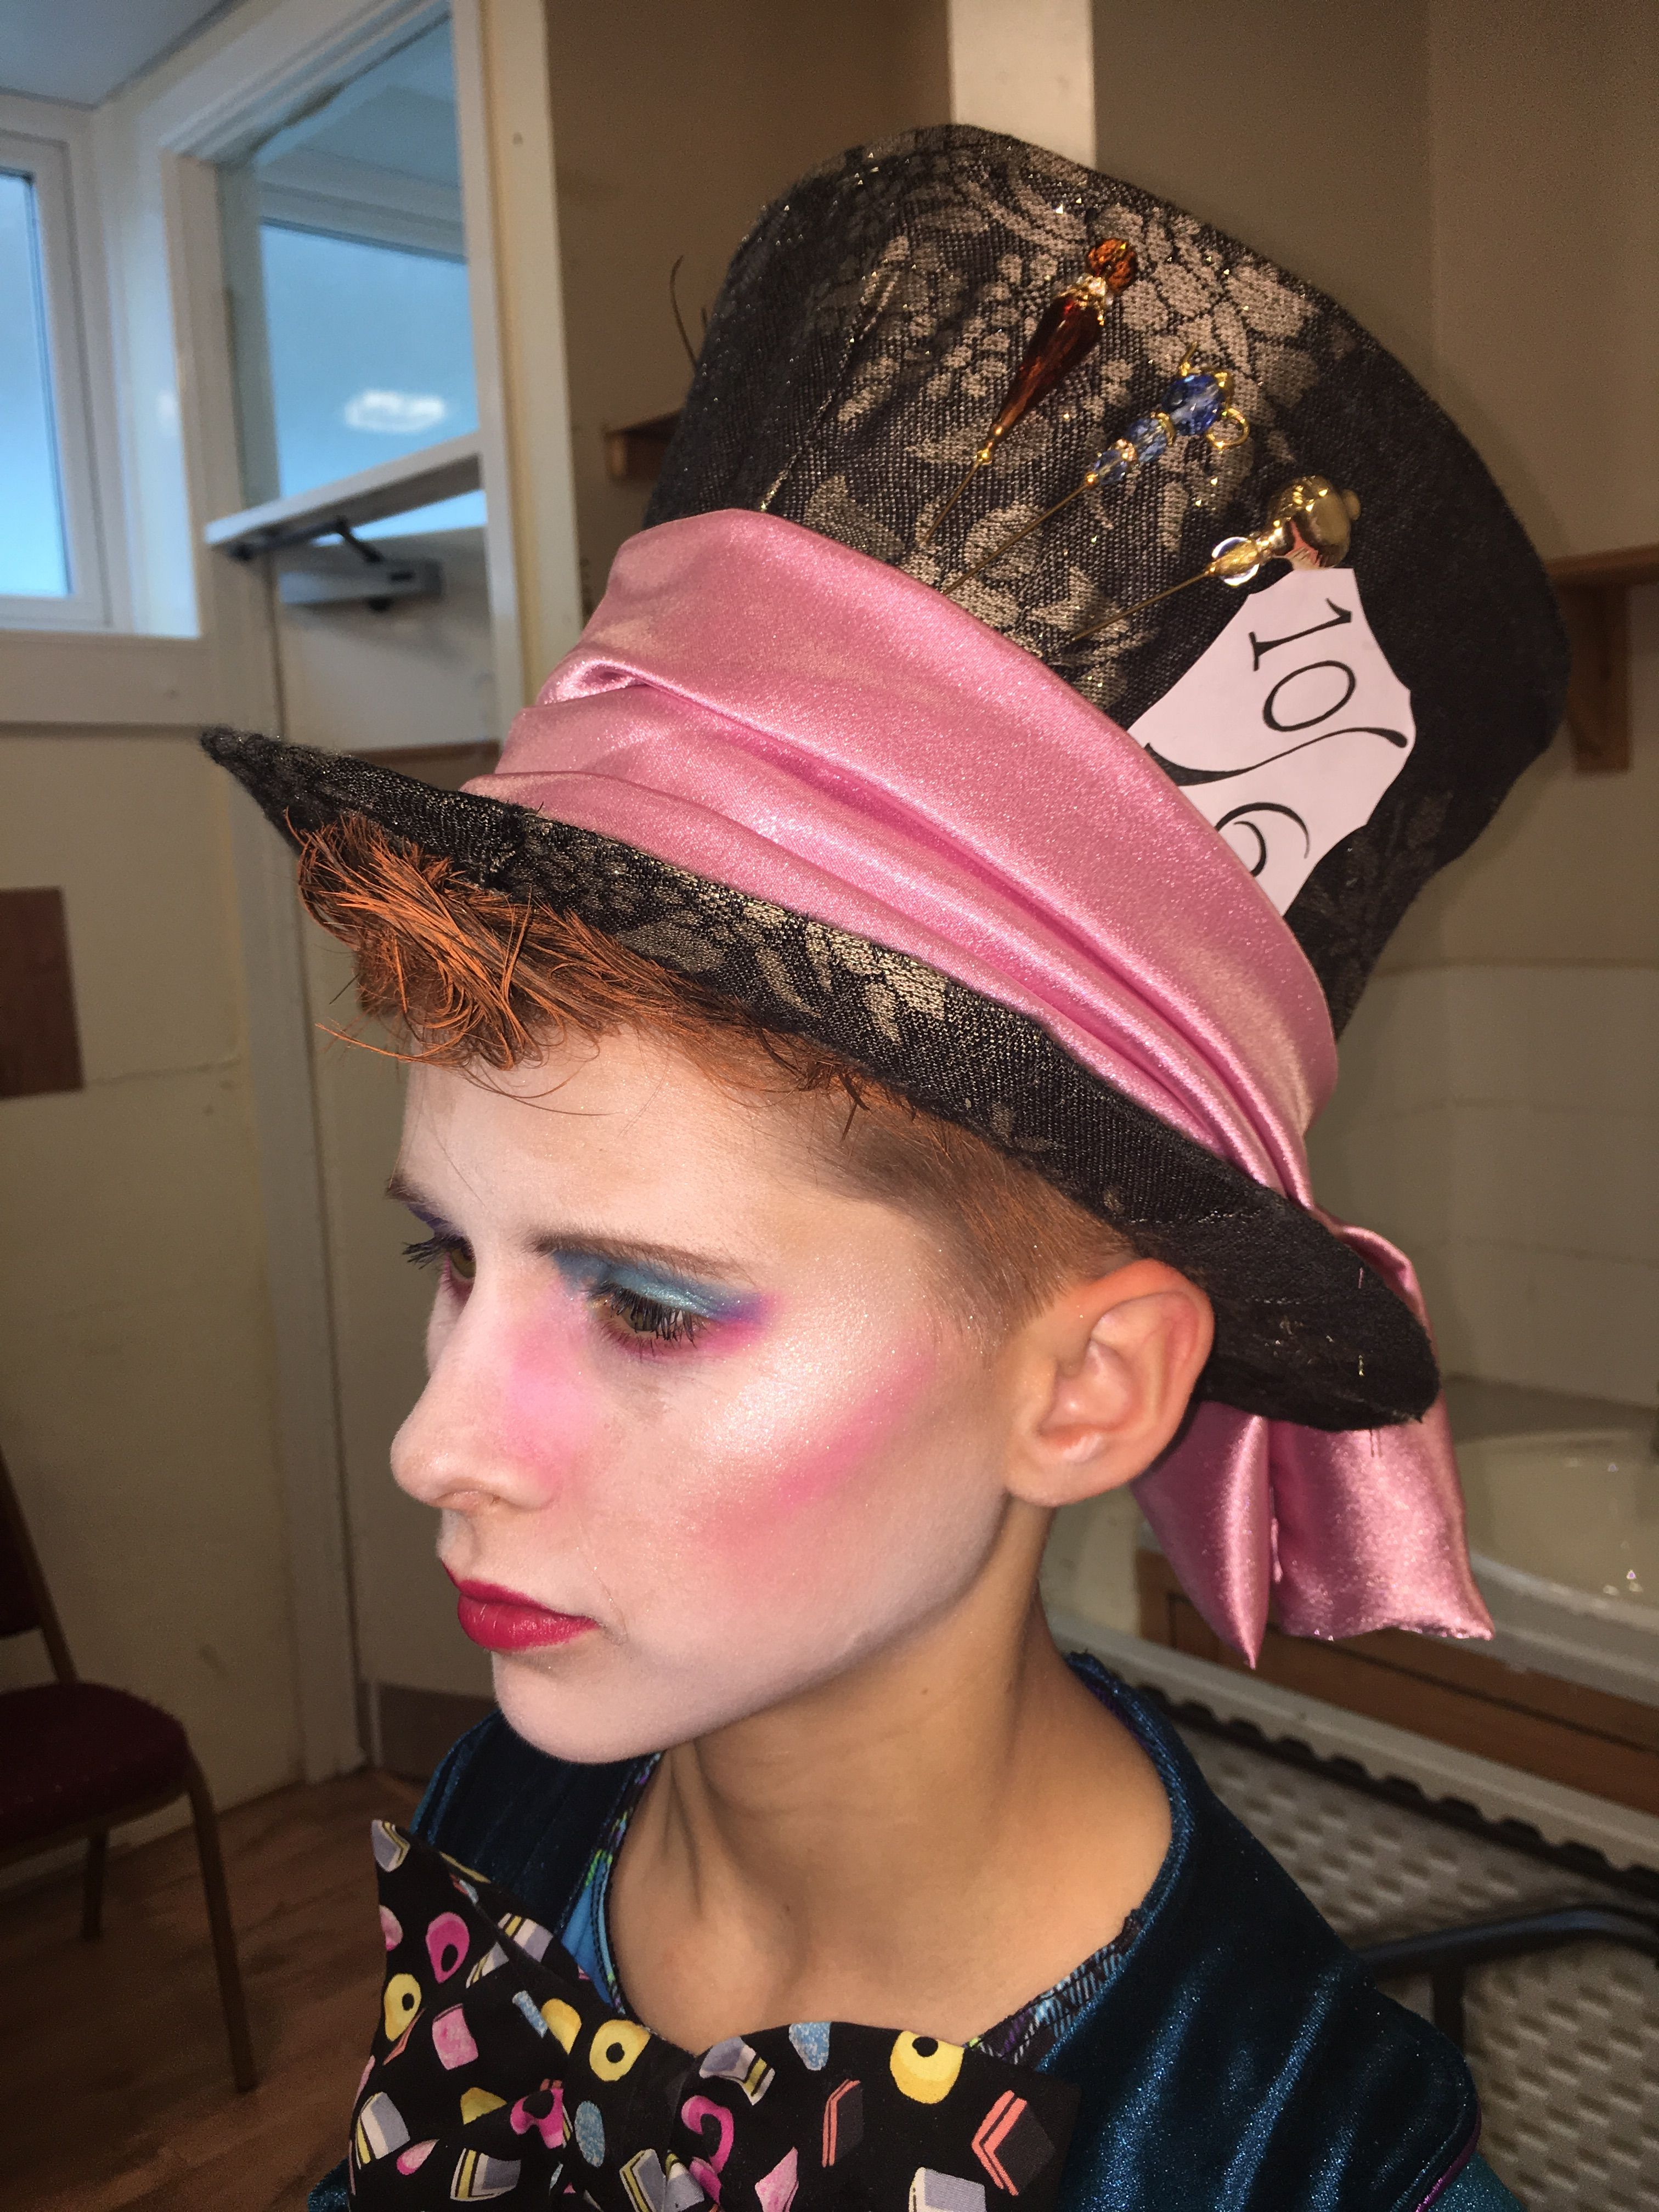 Pin by Karen Lewing on Mad hatter costume and make up